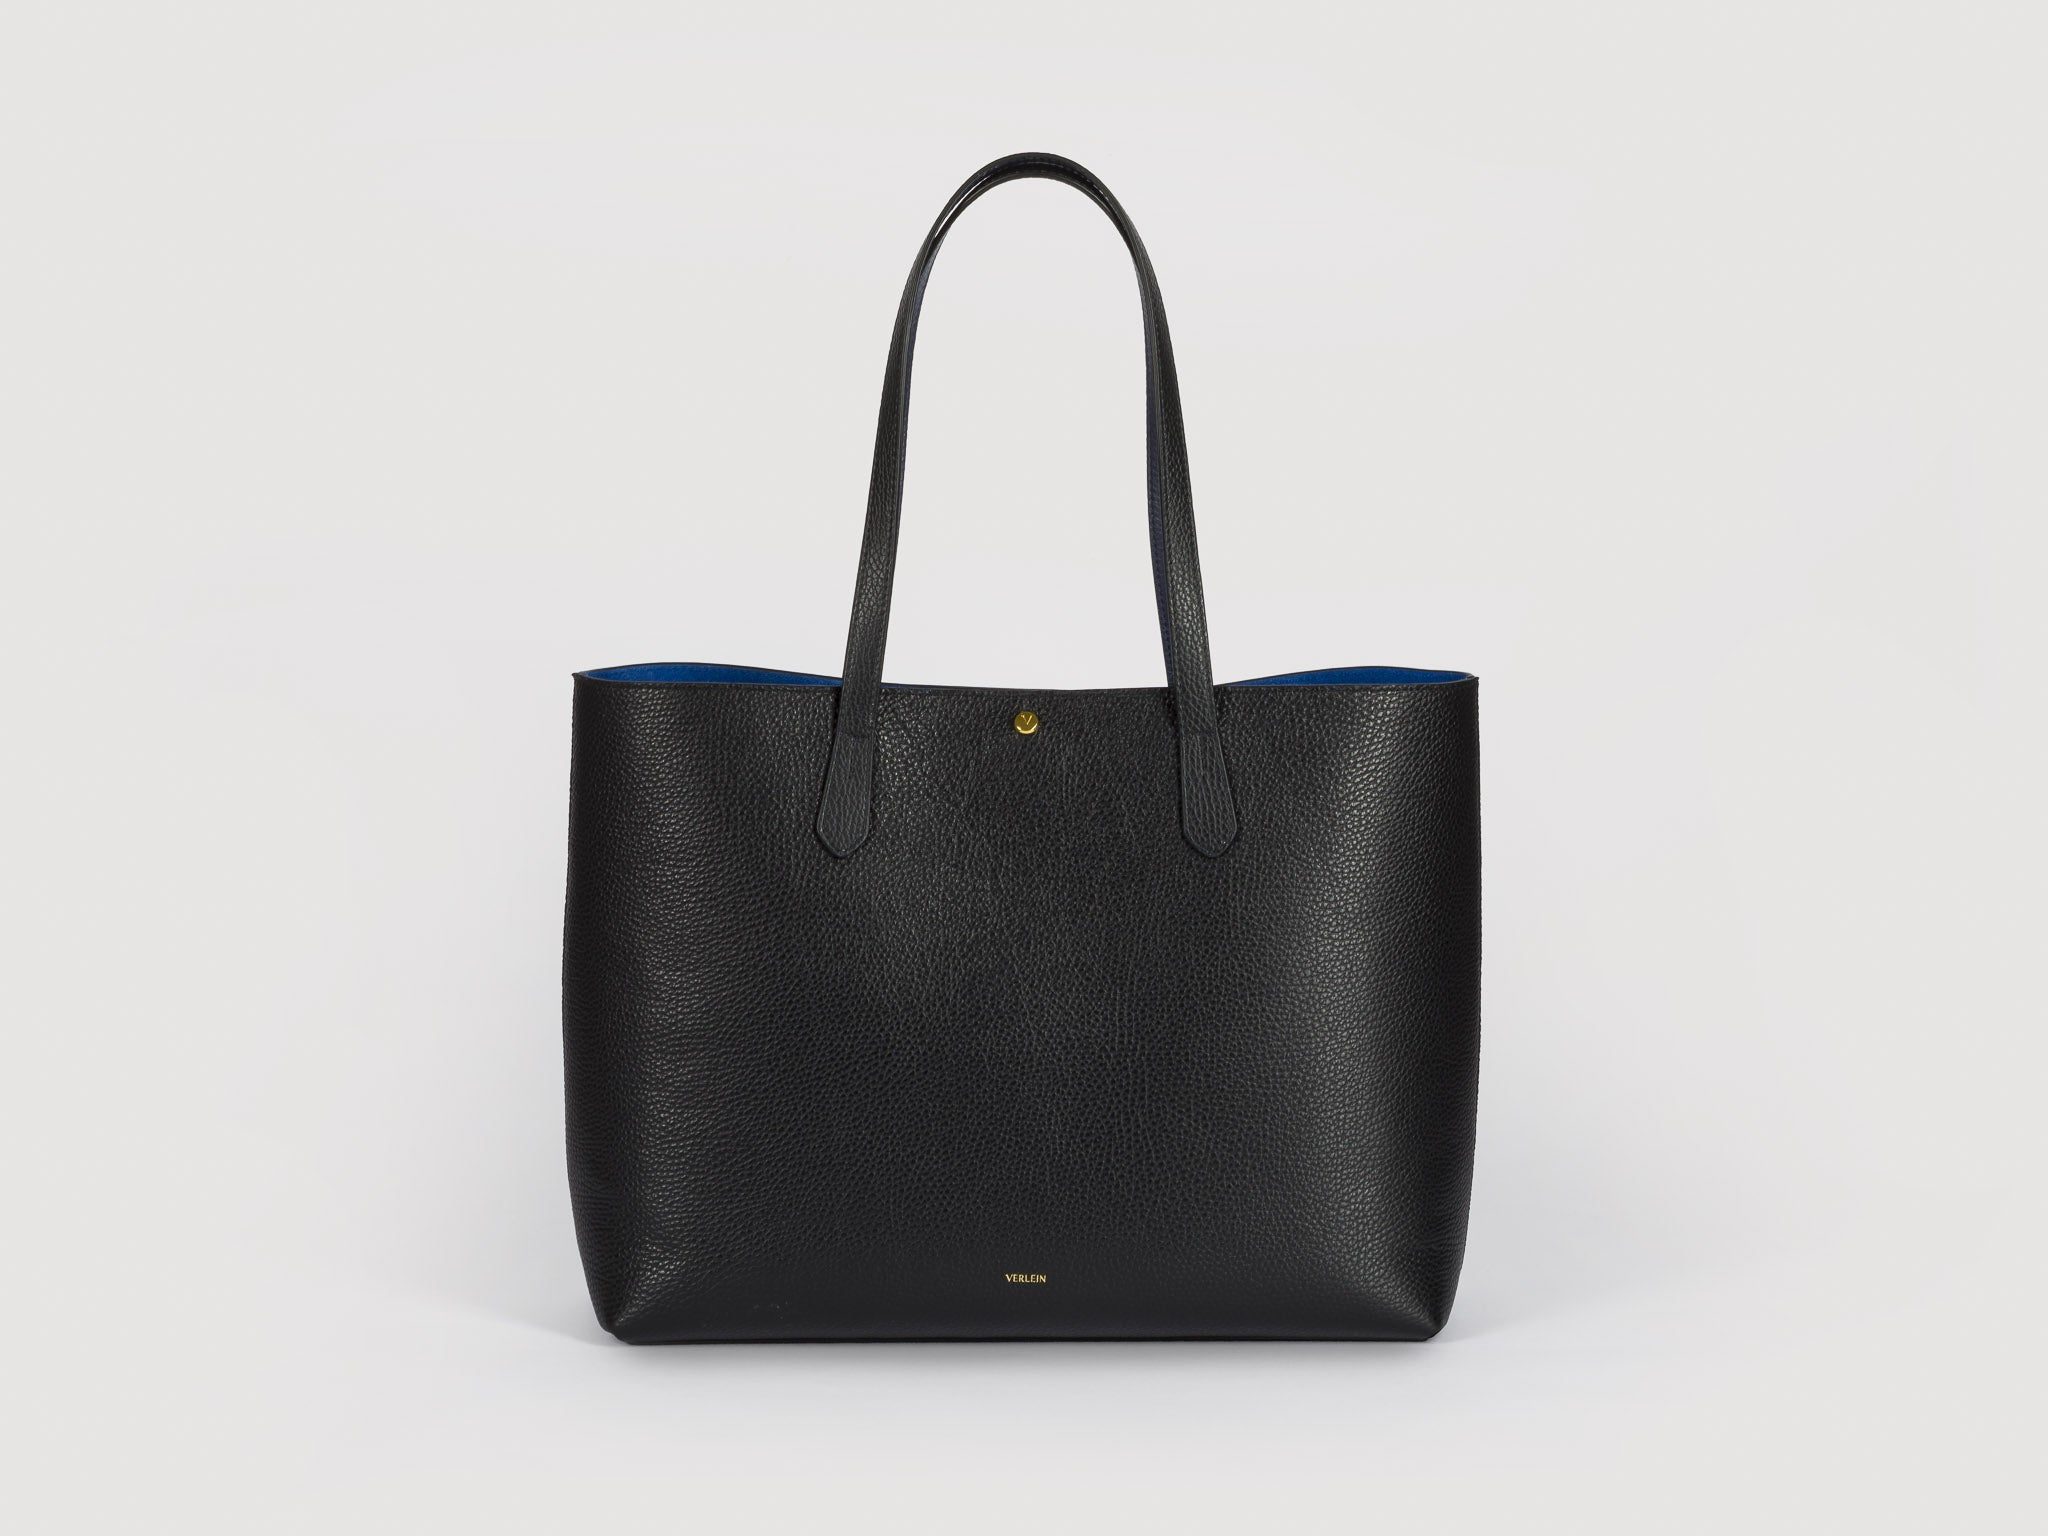 Julia Cinch Tote Bag in Jet Black